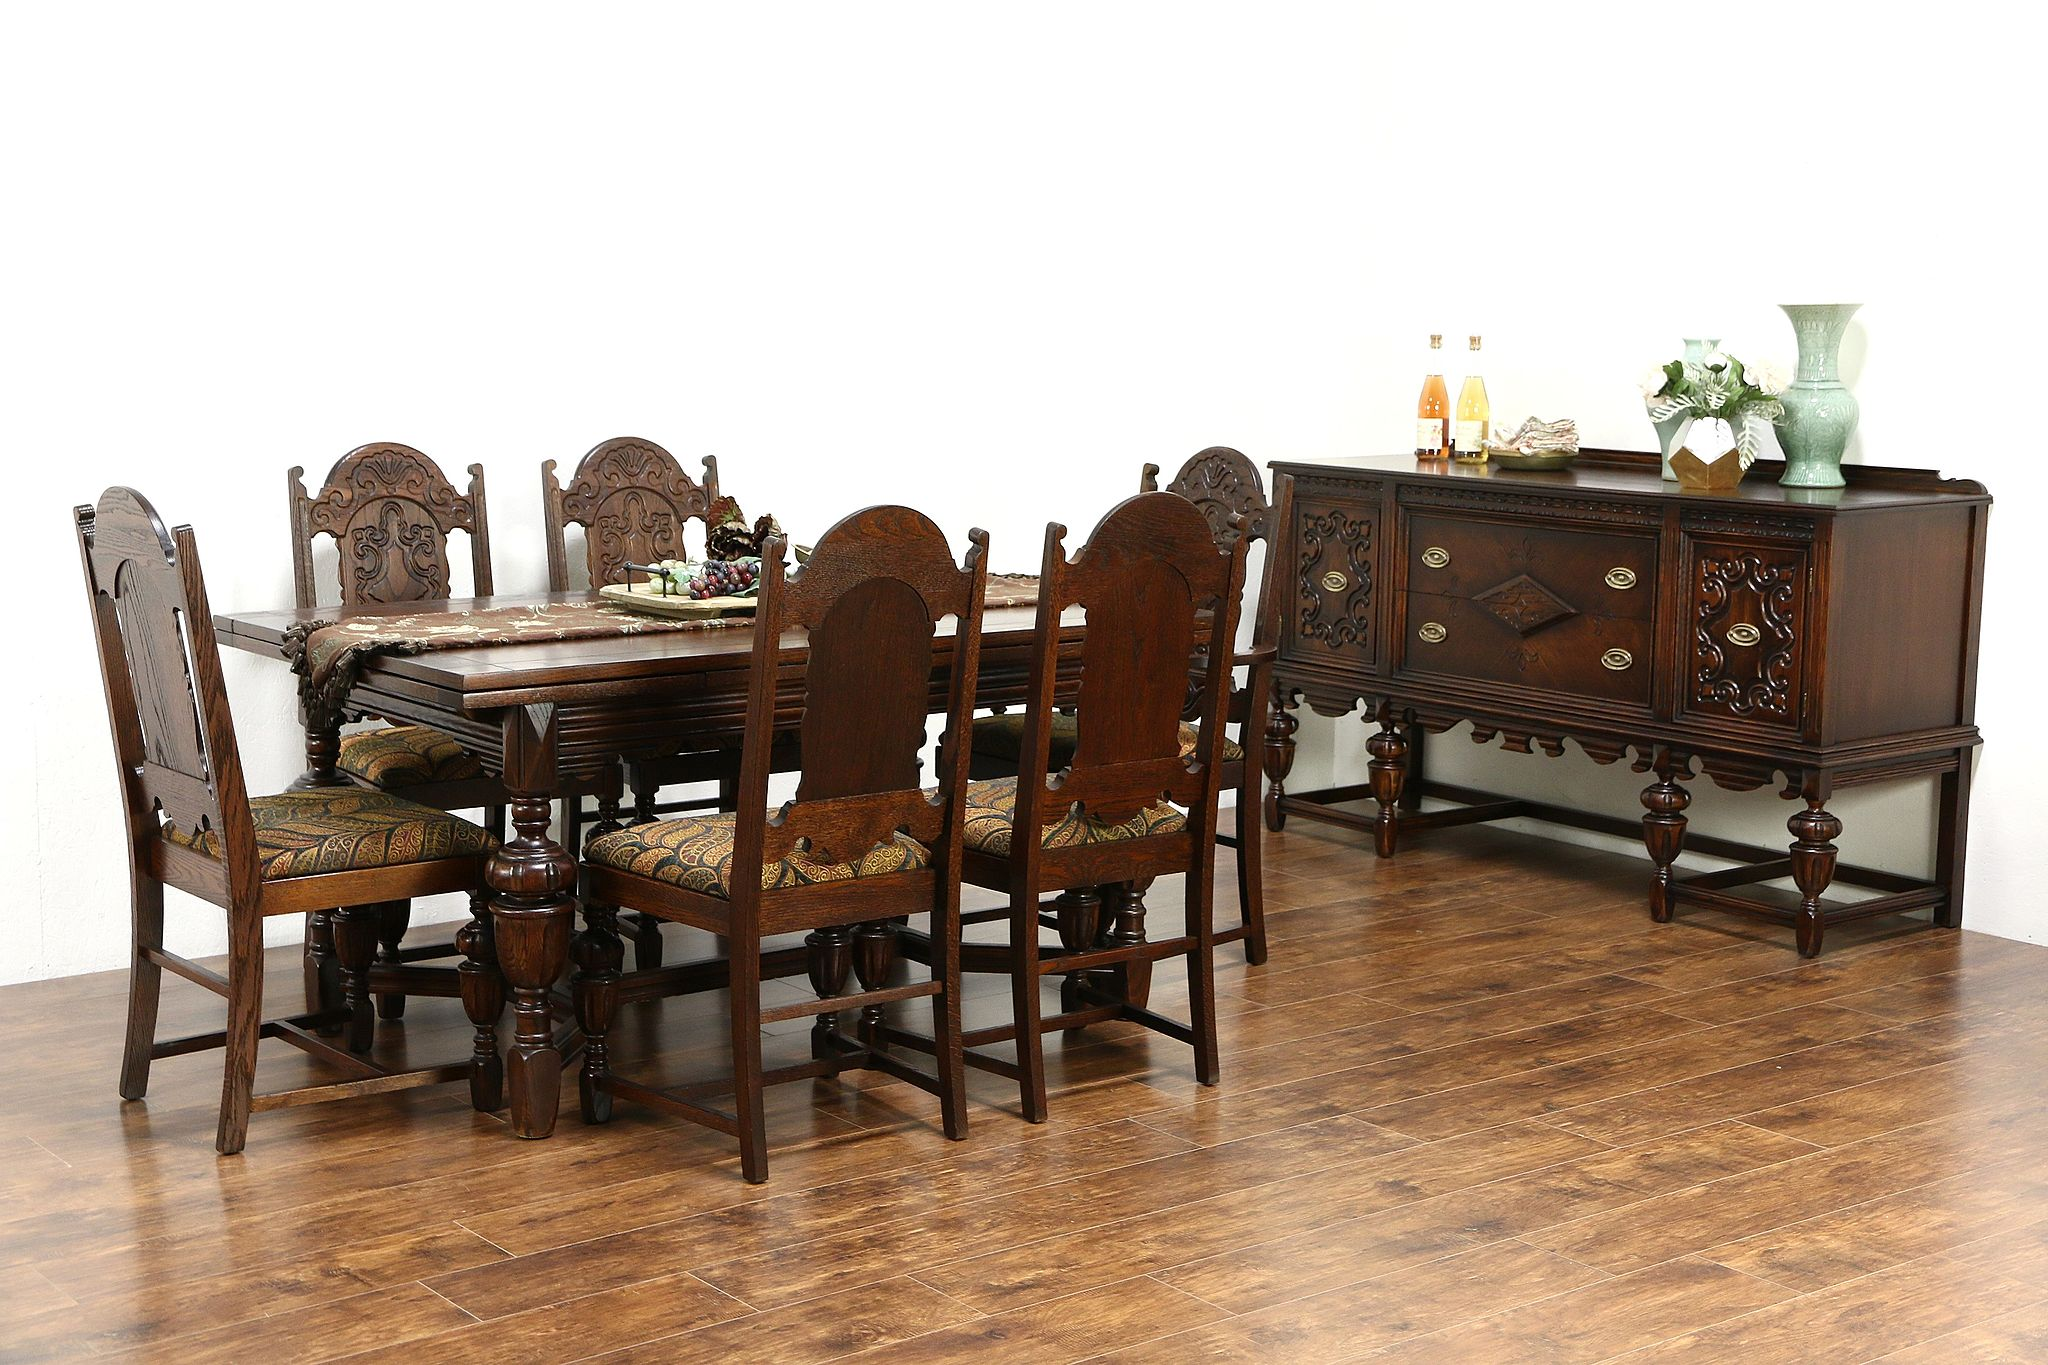 Sold English Tudor 1920 Antique Oak Dining Set Table 6 Chairs New Upholstery Harp Gallery Antiques Furniture